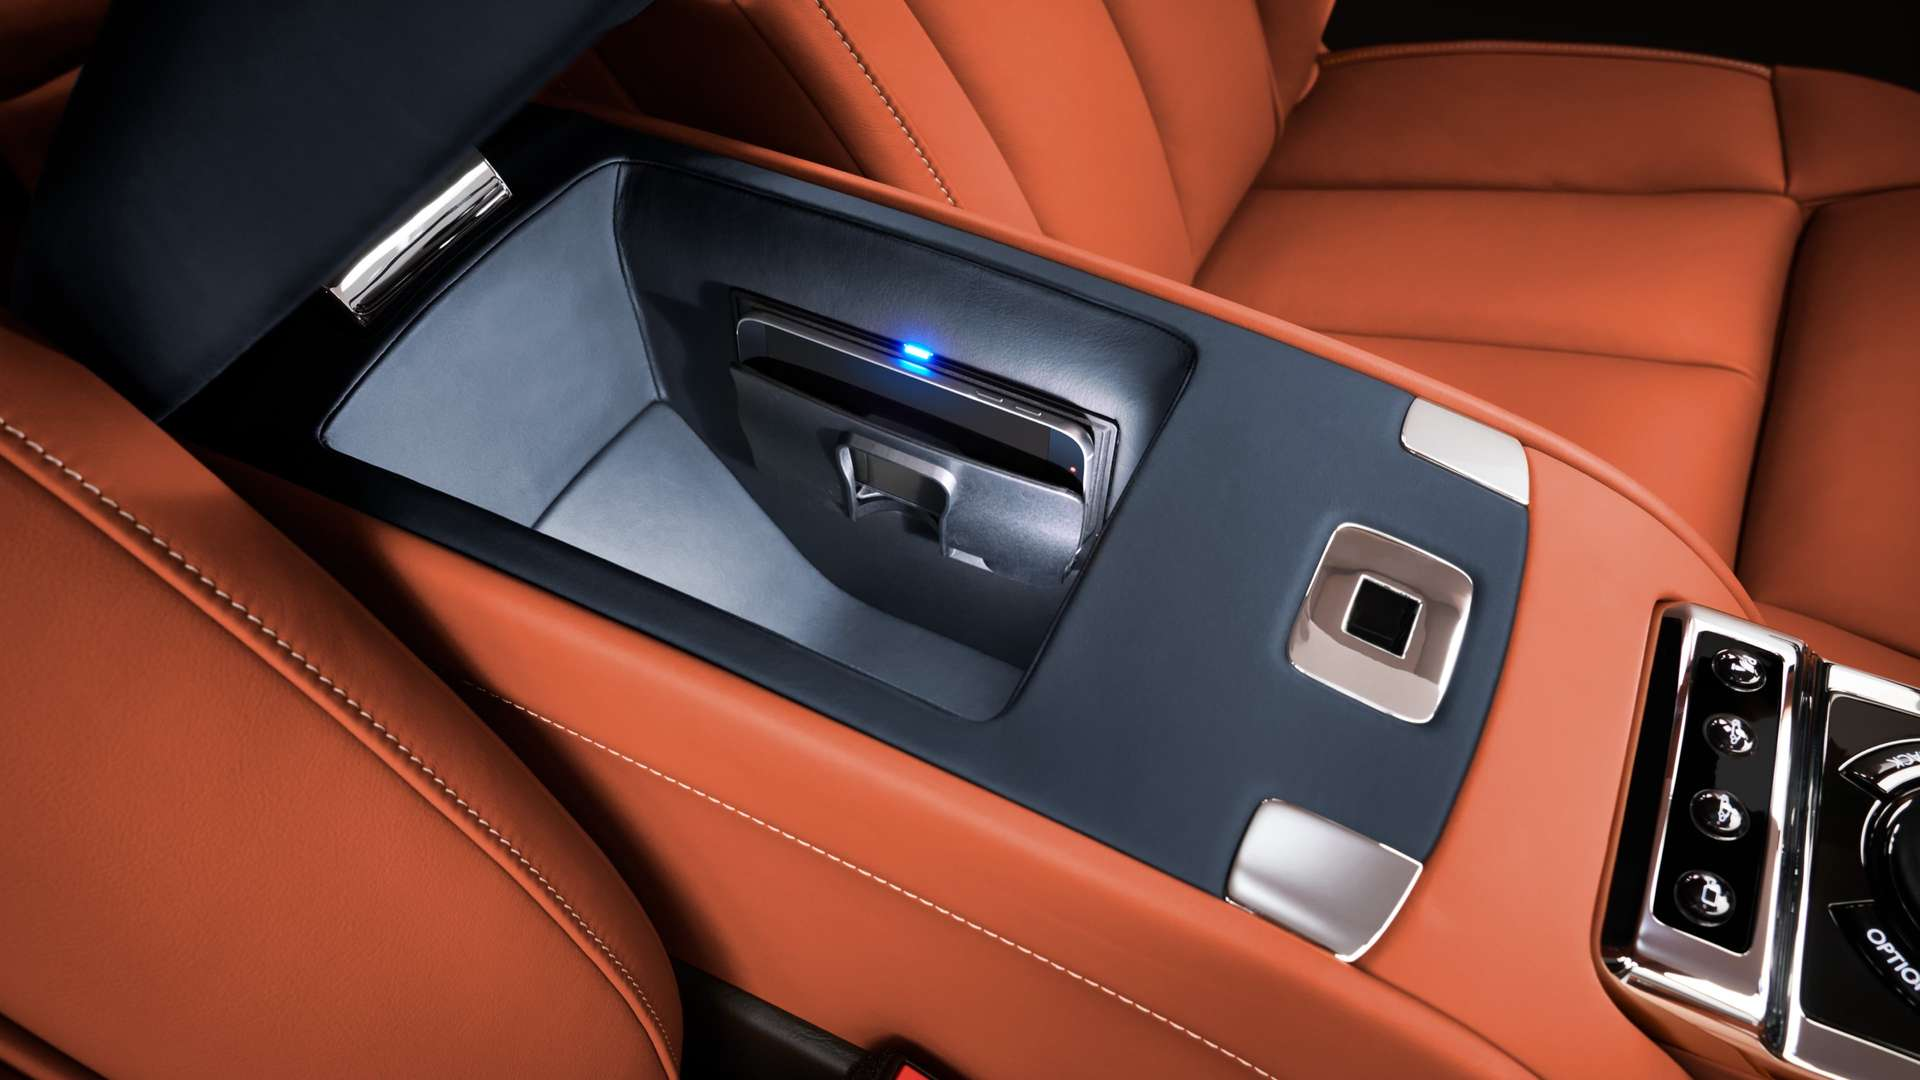 The phone charger in the rear of a Rolls-Royce Phantom.